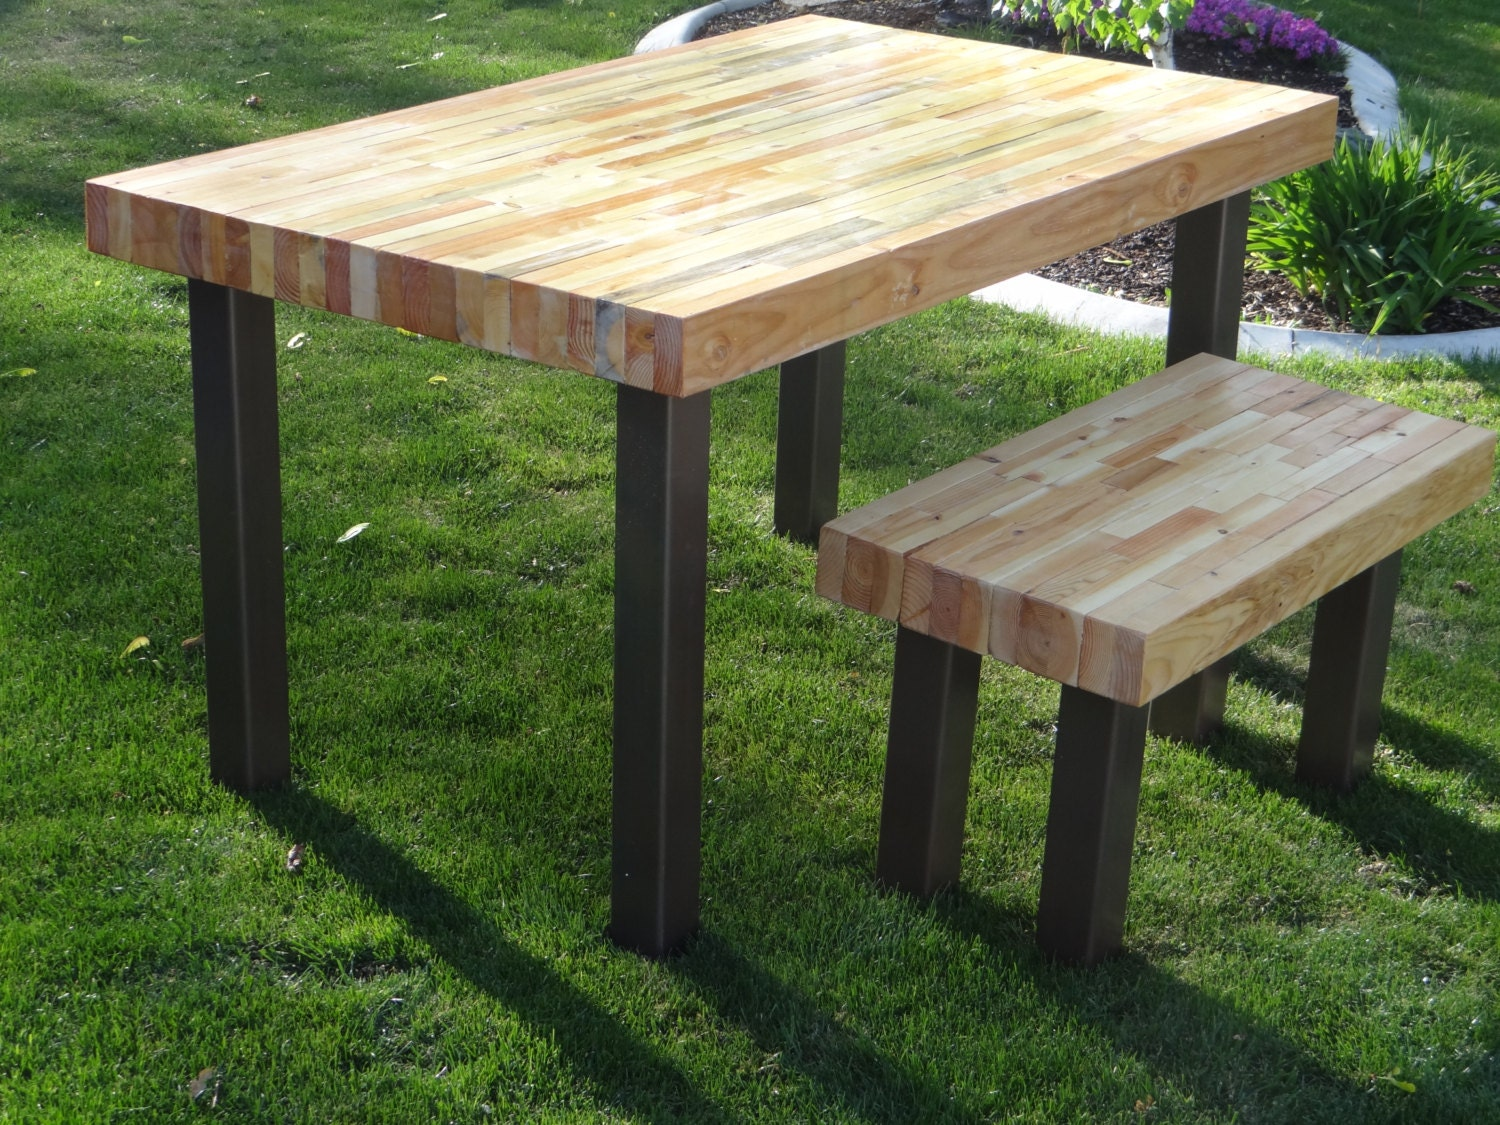 Reclaimed butcher block style wood table and bench up cycled